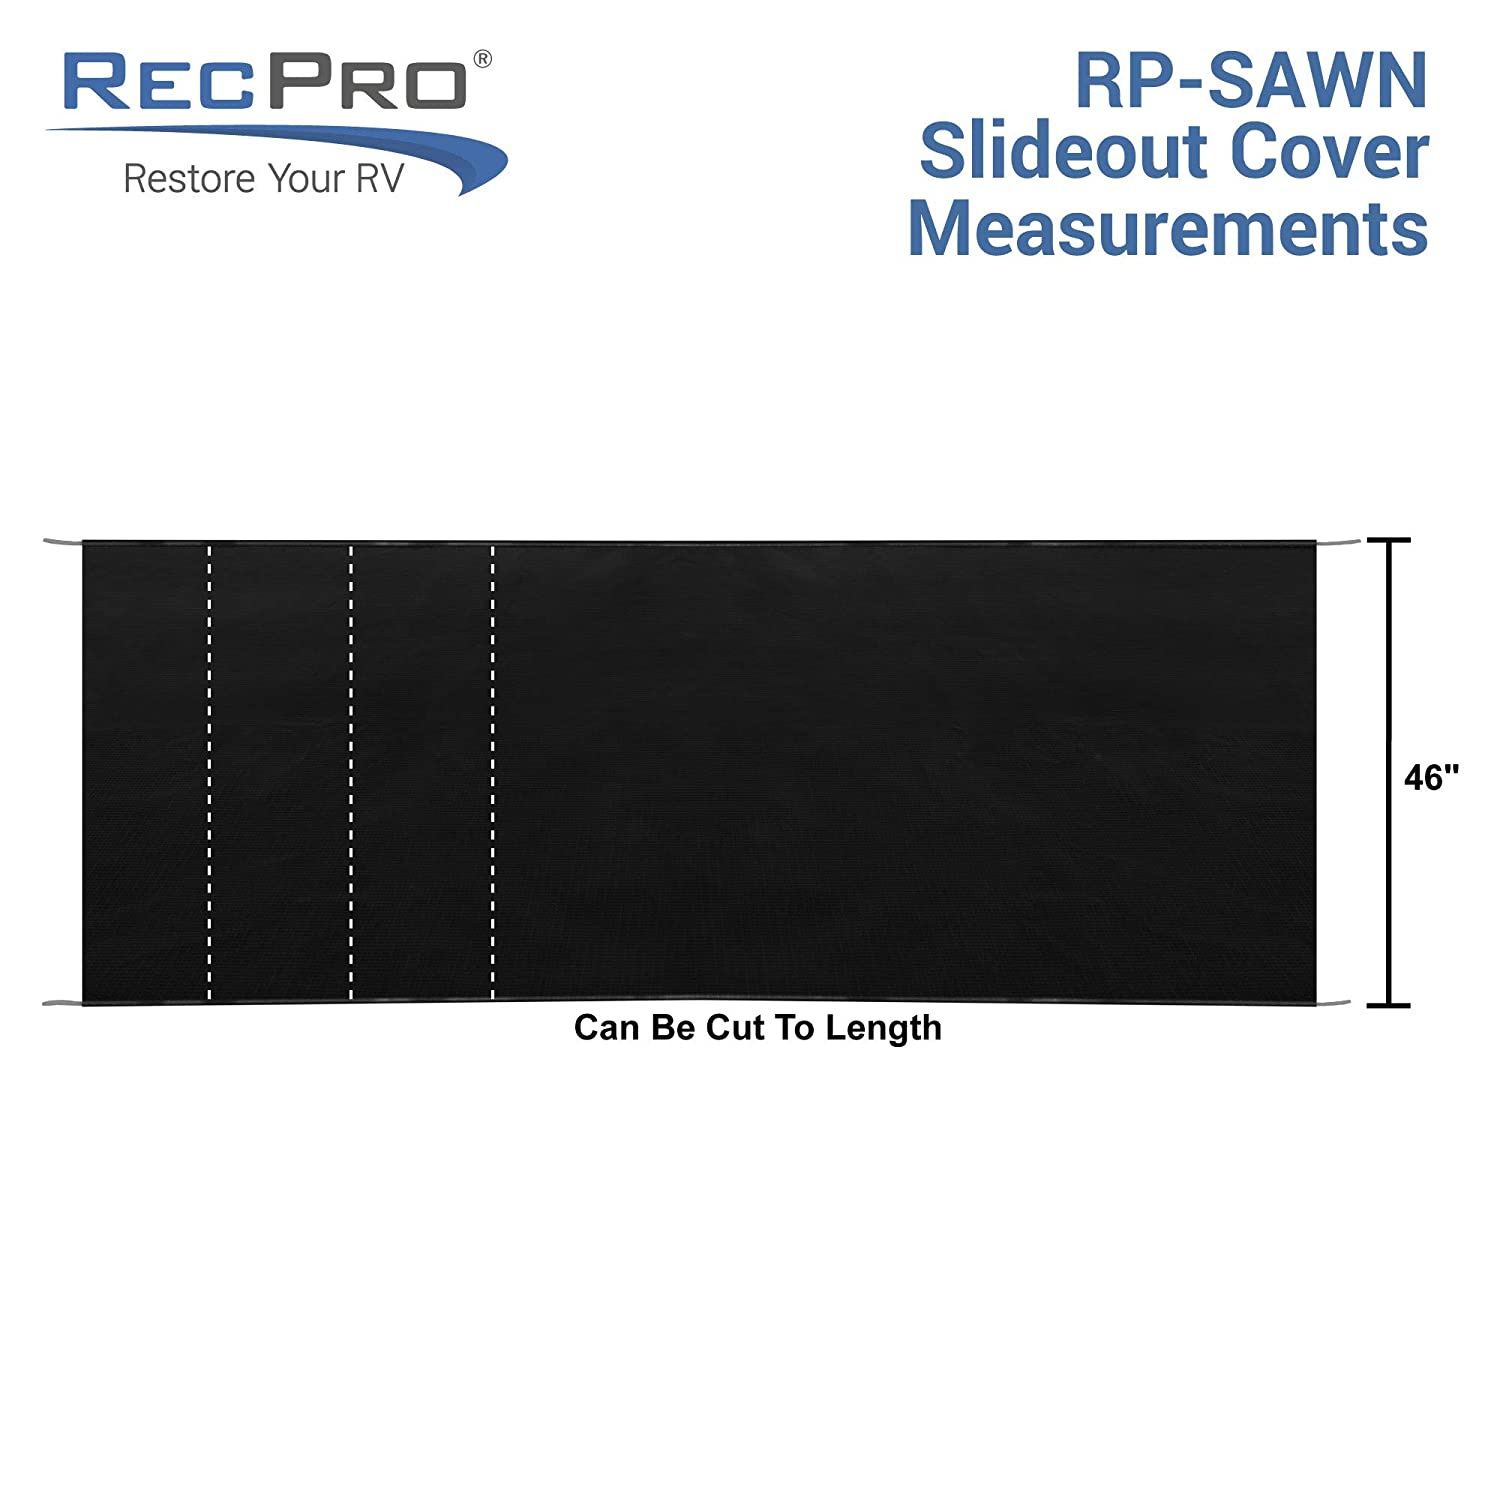 Slideout Awning RecPro RV Slide Out Awning RV Slide Topper Black 46 x 200 Fabric Only